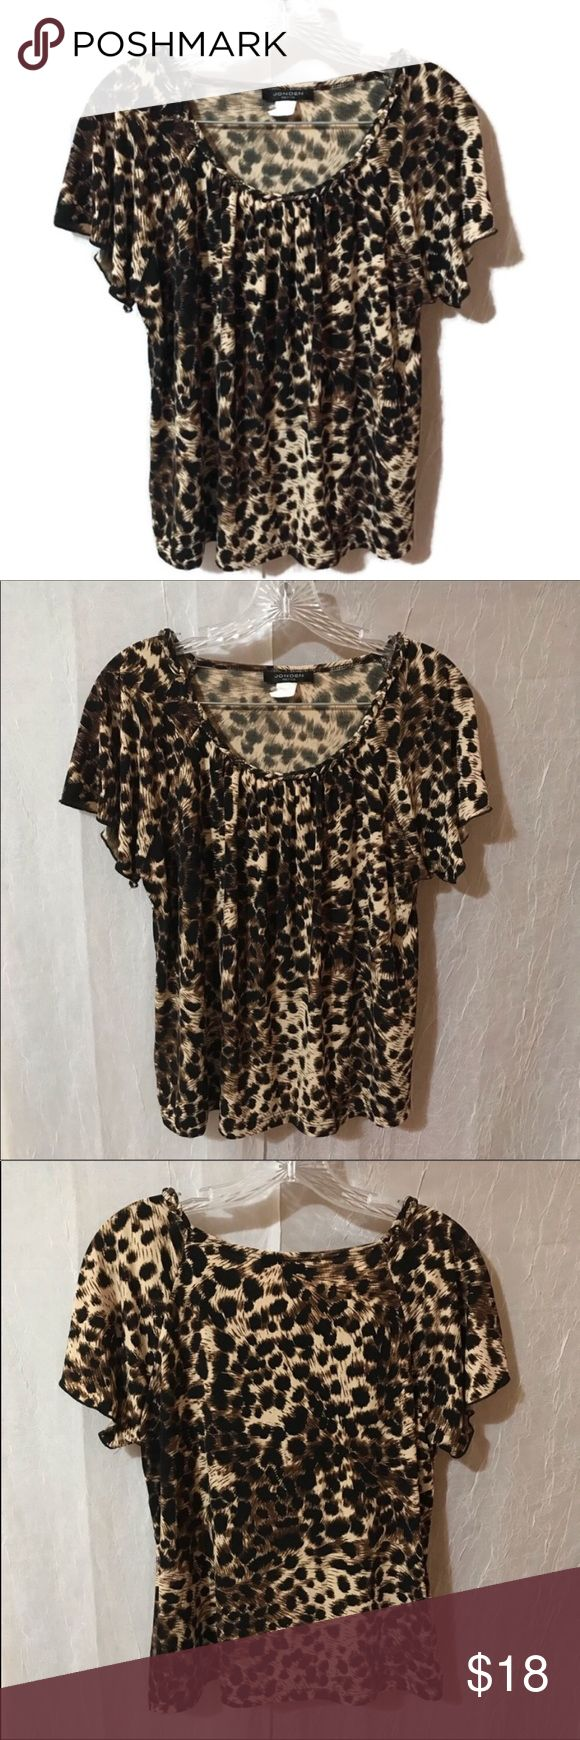 """JONDEN PETITE Women's Leopard Print Blouse Jonden Petite Short Sleeve Pleated Scoop Neck Leopard Print Blouse Size PL Approximate Measurements Flat: Armpit To Armpit 18 1/2"""" Length 21""""  90% Polyester 10% Soandex  (H3) 6.3oz All Measurements Are Approximate And Photographs Are Provided For These Measurements. If You Have Any Questions Or Need Additional Photographs, Please Ask Before Your Purchase. 5⭐️ Star Seller  Smoke Free 🚭 Pet Friendly Home 🐱🐶🐠 Jonden Tops Blouses"""